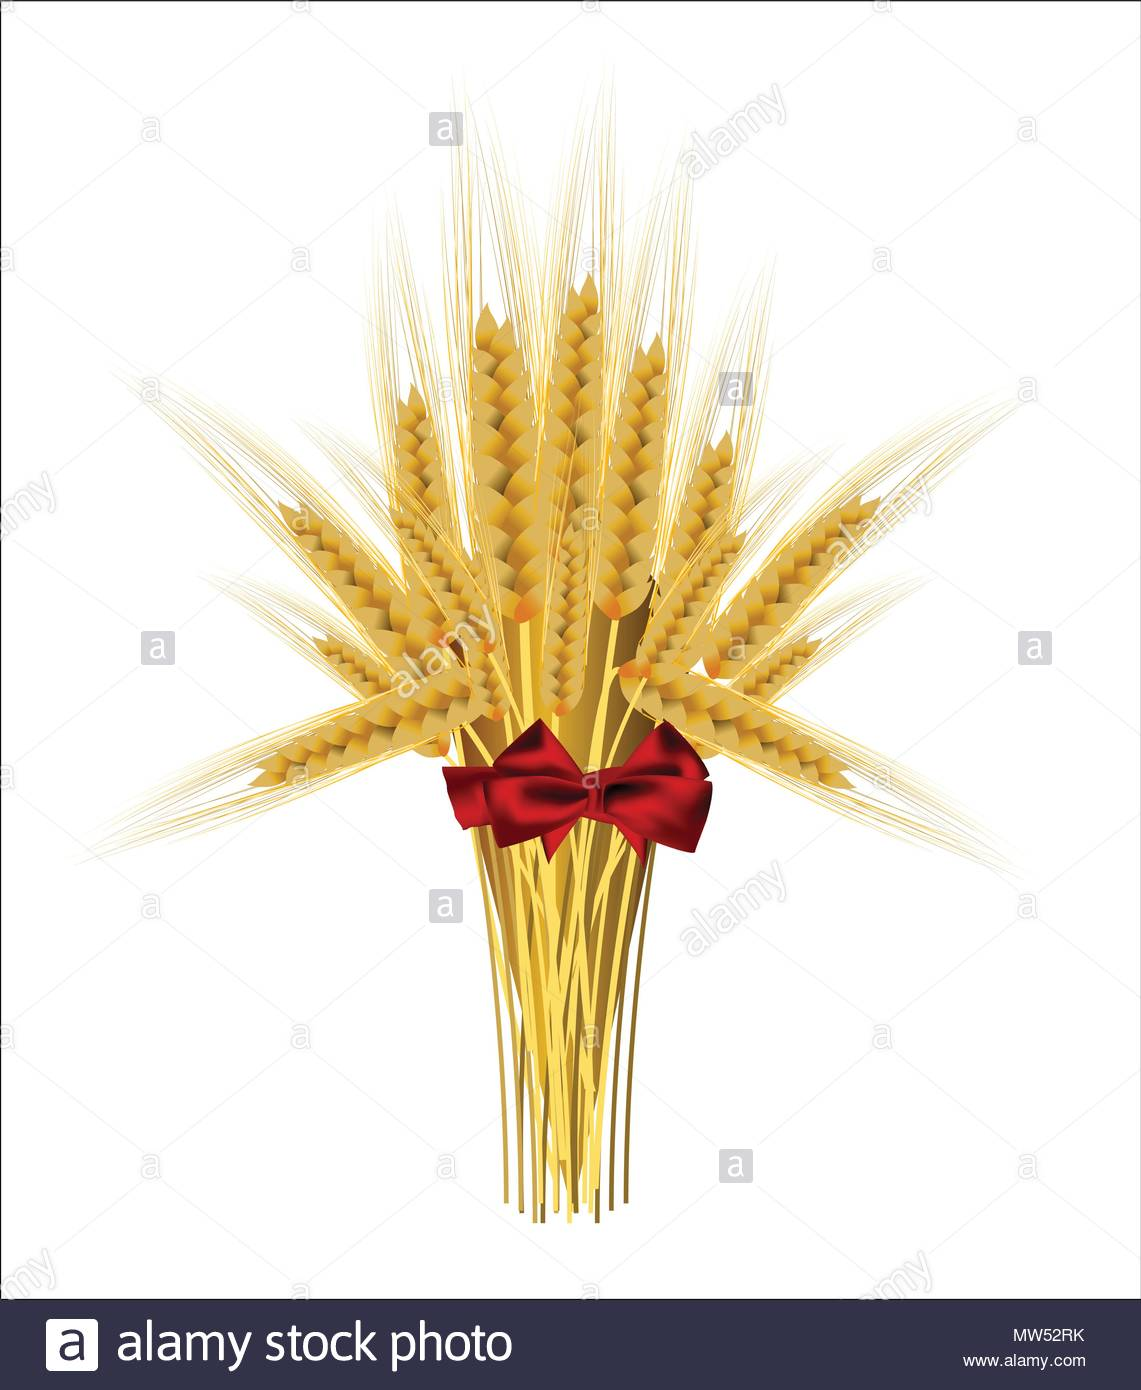 Sheaf of wheat ears with a bow on a white background - Stock Vector